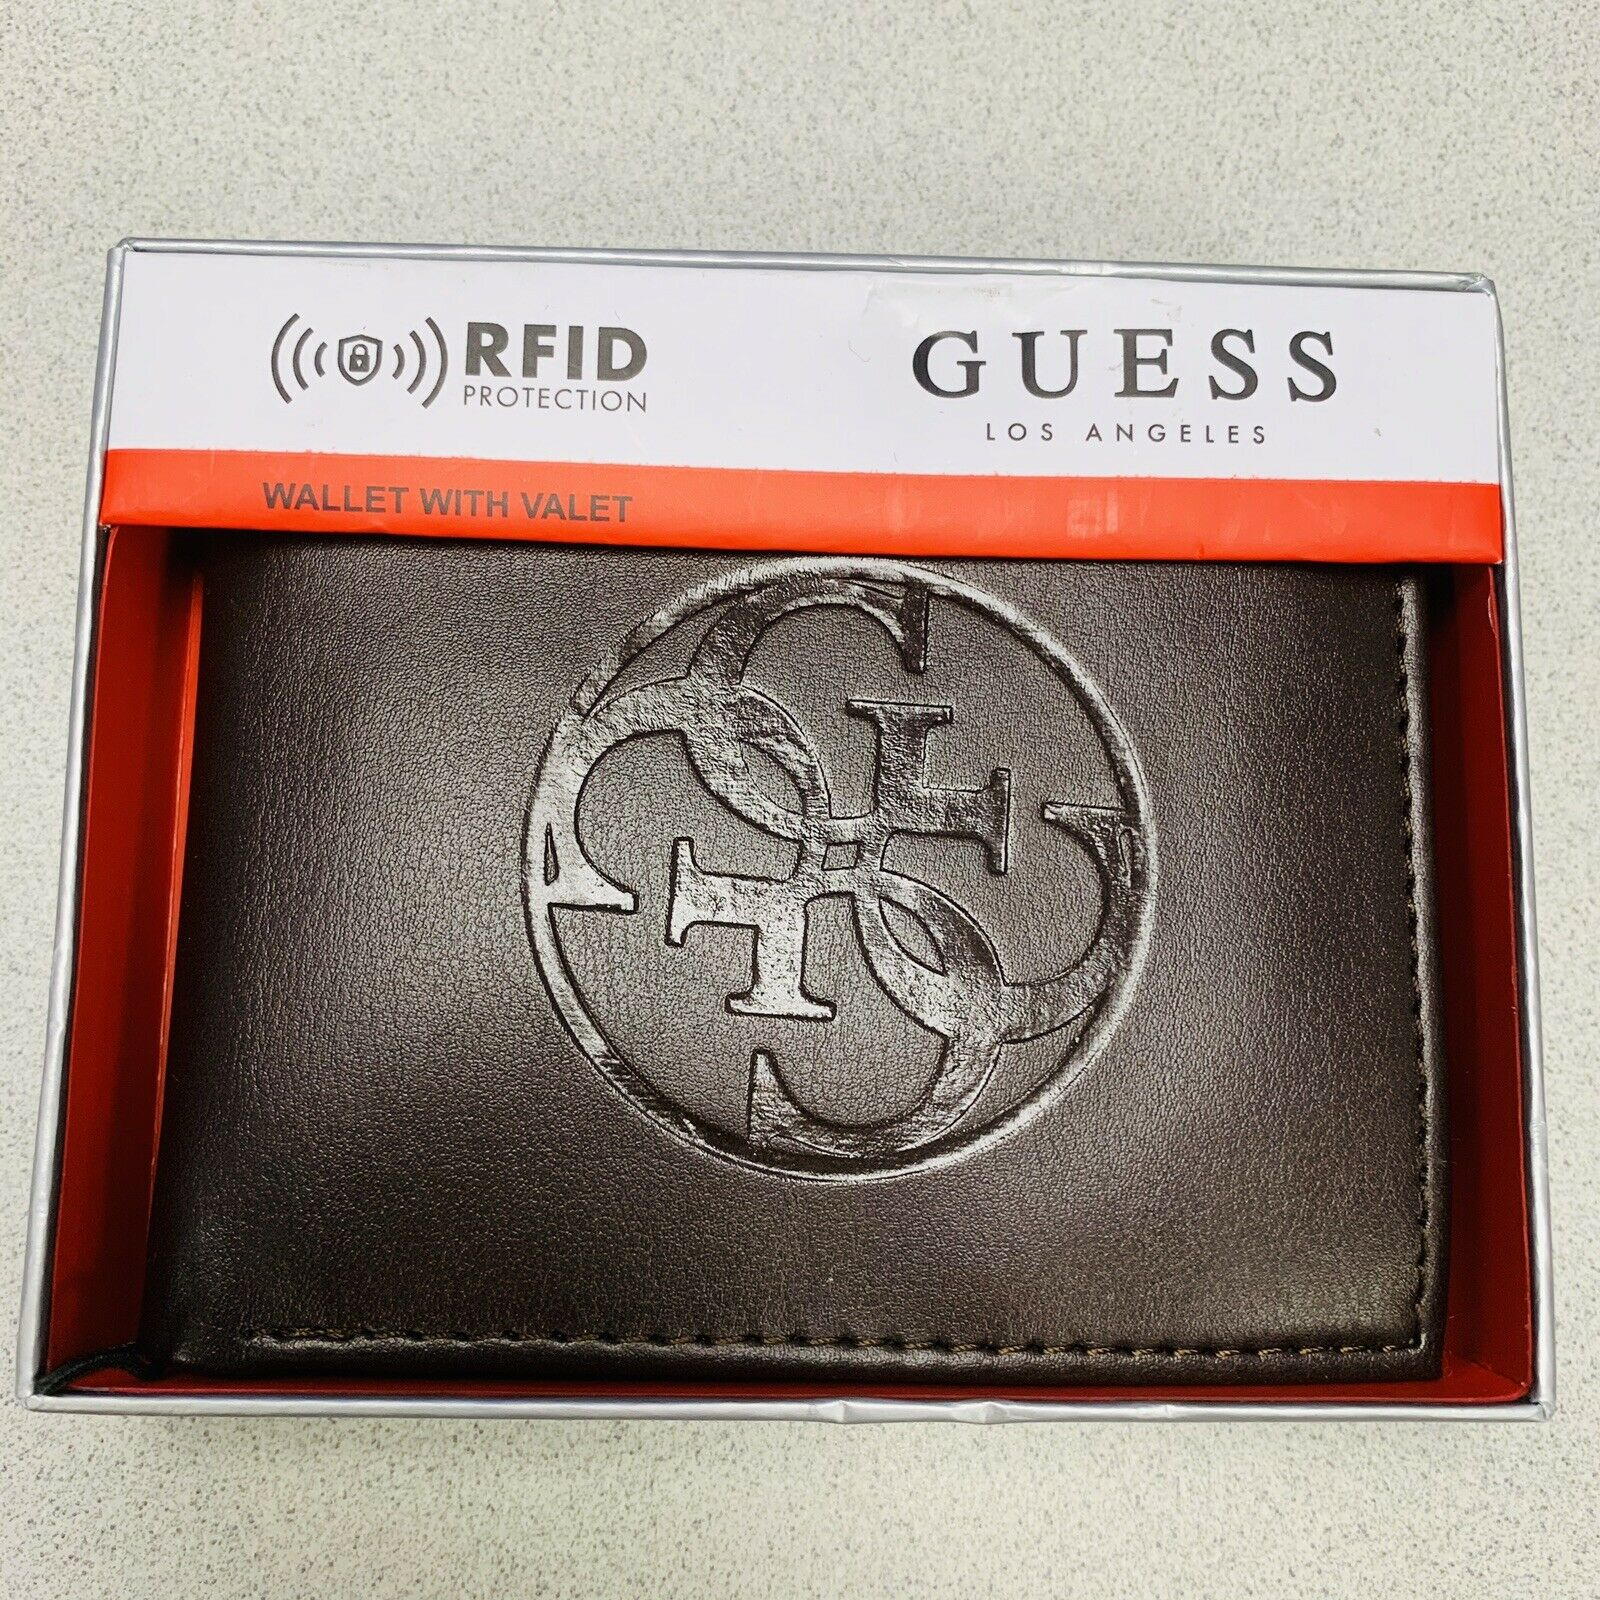 Guess Men's Billfold Brown Wallet New With Box